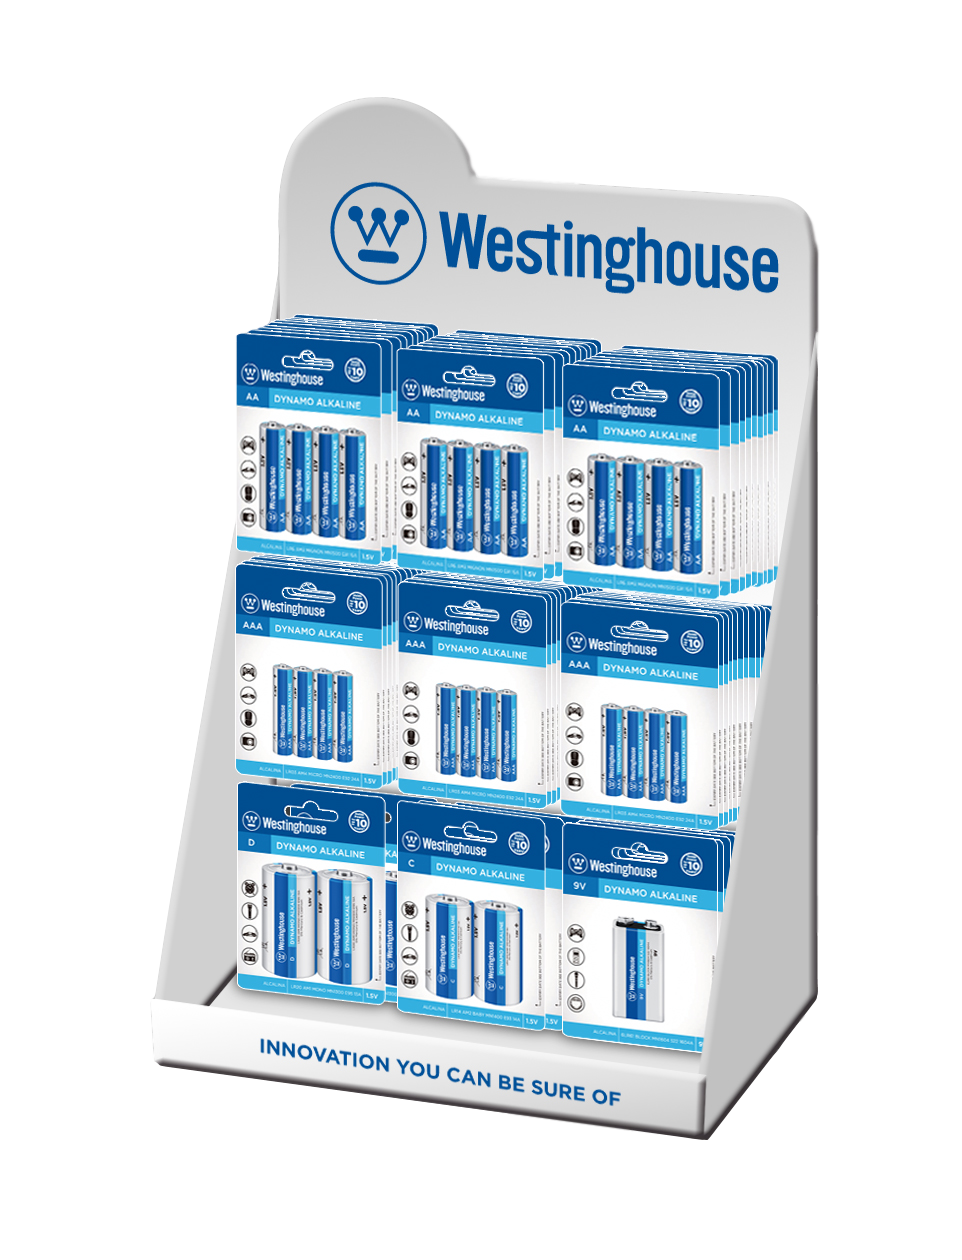 Westinghouse Dynamo Alkaline 96 pc. Battery Display Only